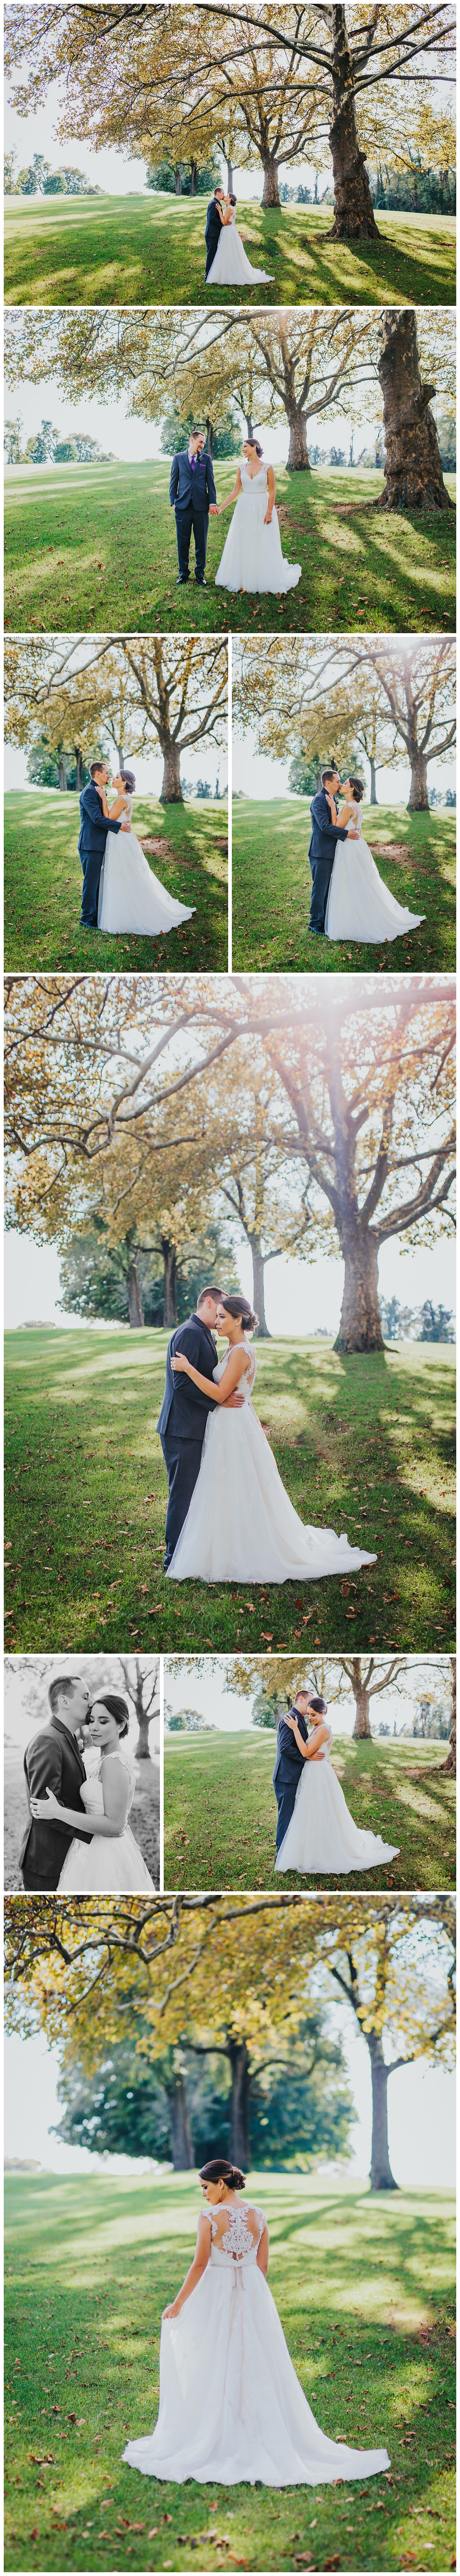 Romantic portraits in the sunshine on the green in Catonsville, MD Rolling Roads Golf Course